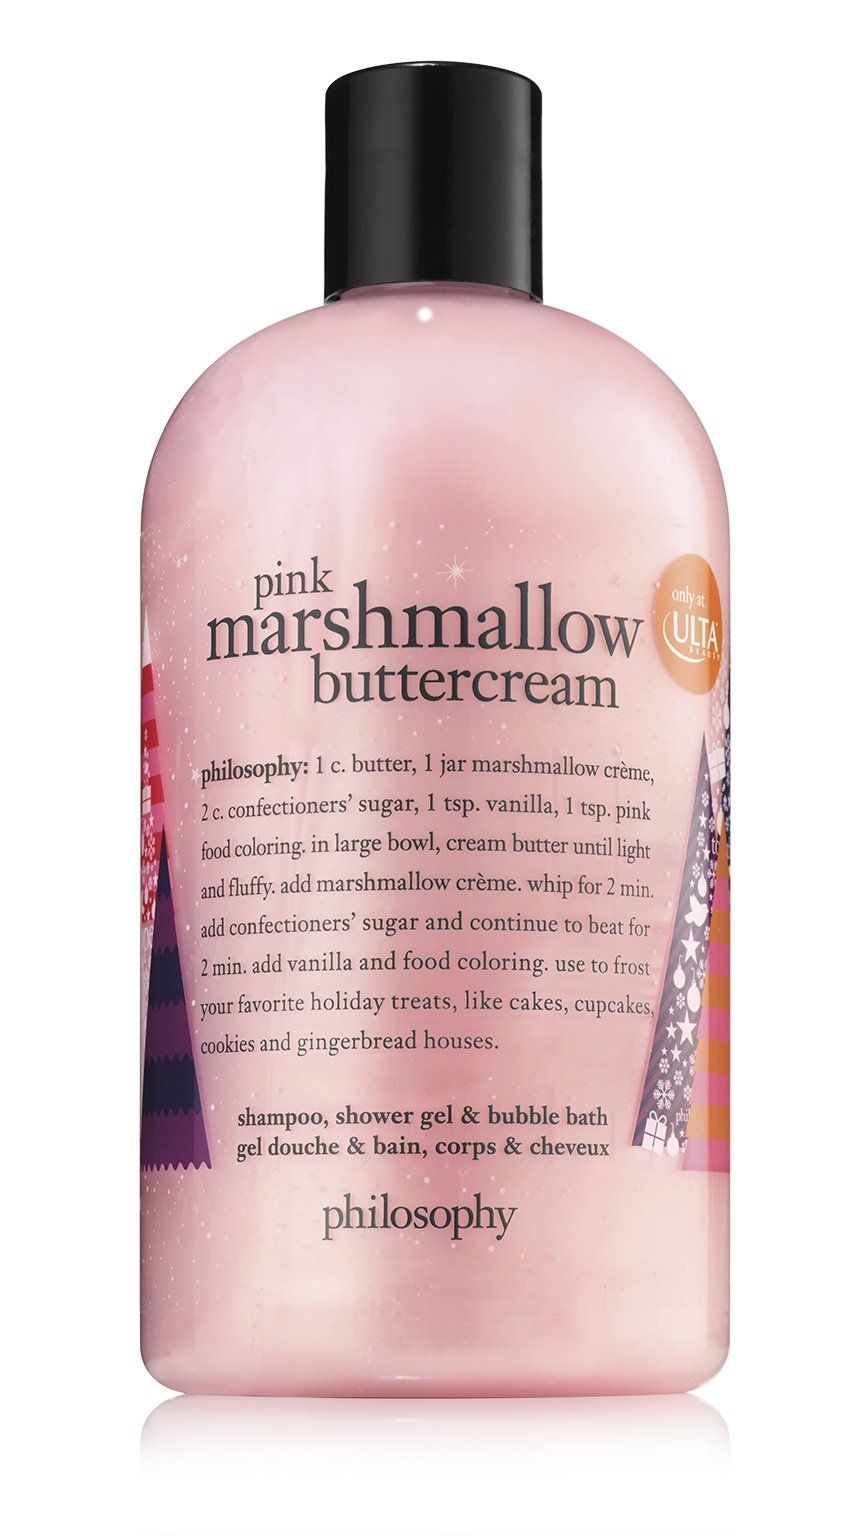 Pamper Skin And Hair With Pink Marshmallow Buttercream Shampoo Shower Gel Bubble Bath A Hydrating Form Pink Marshmallows Marshmallow Buttercream Shower Gel